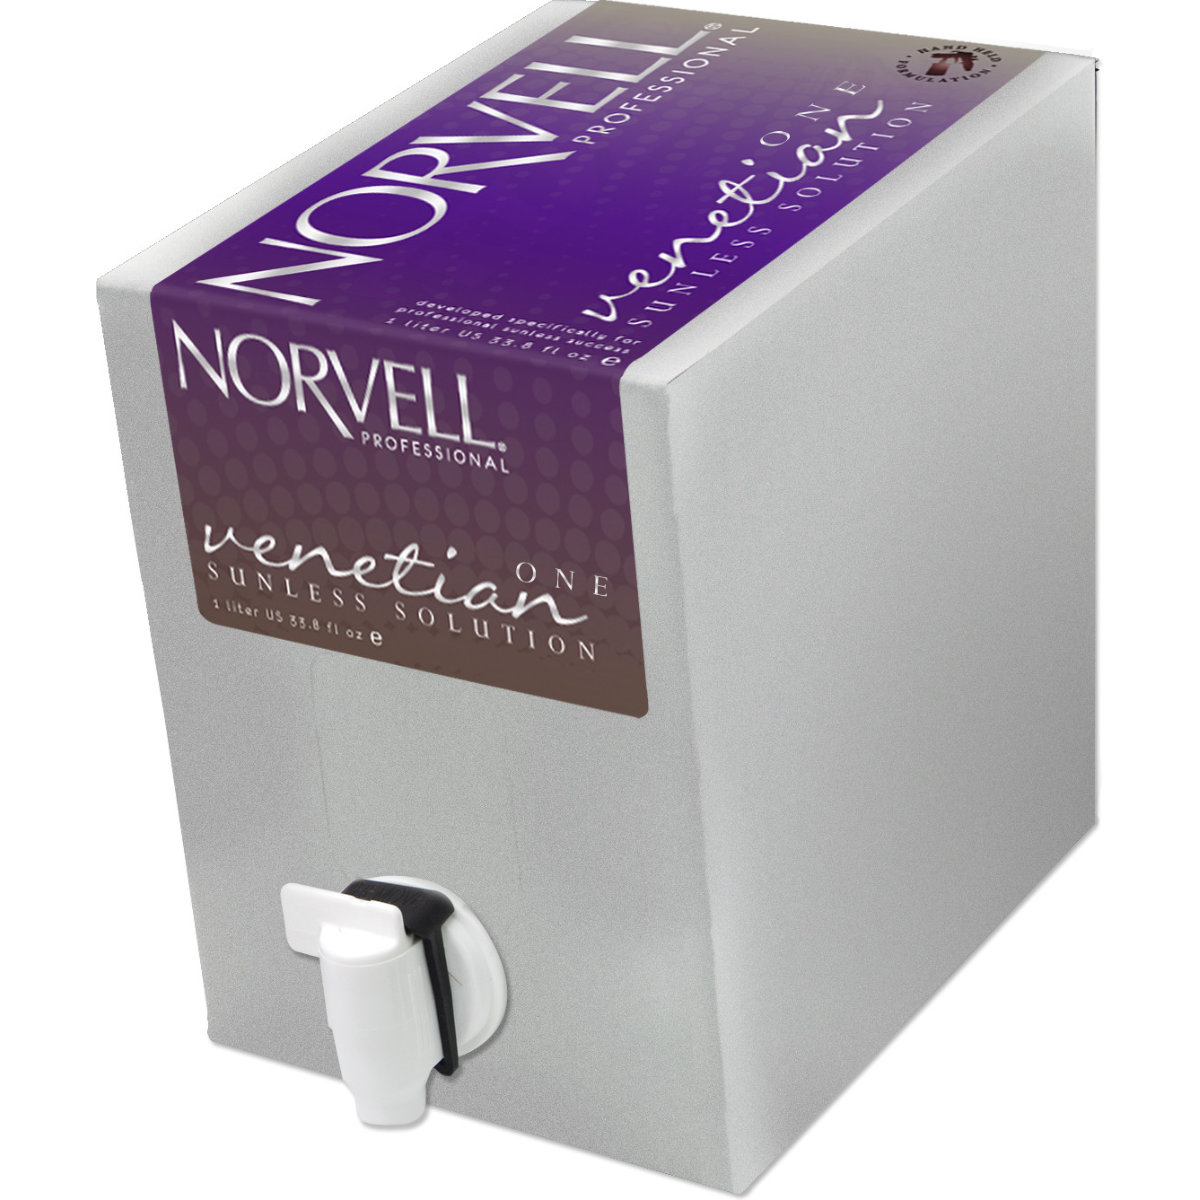 Norvell Venetian ONE One Hour Rapid Sunless Handheld Solution - 34 oz.